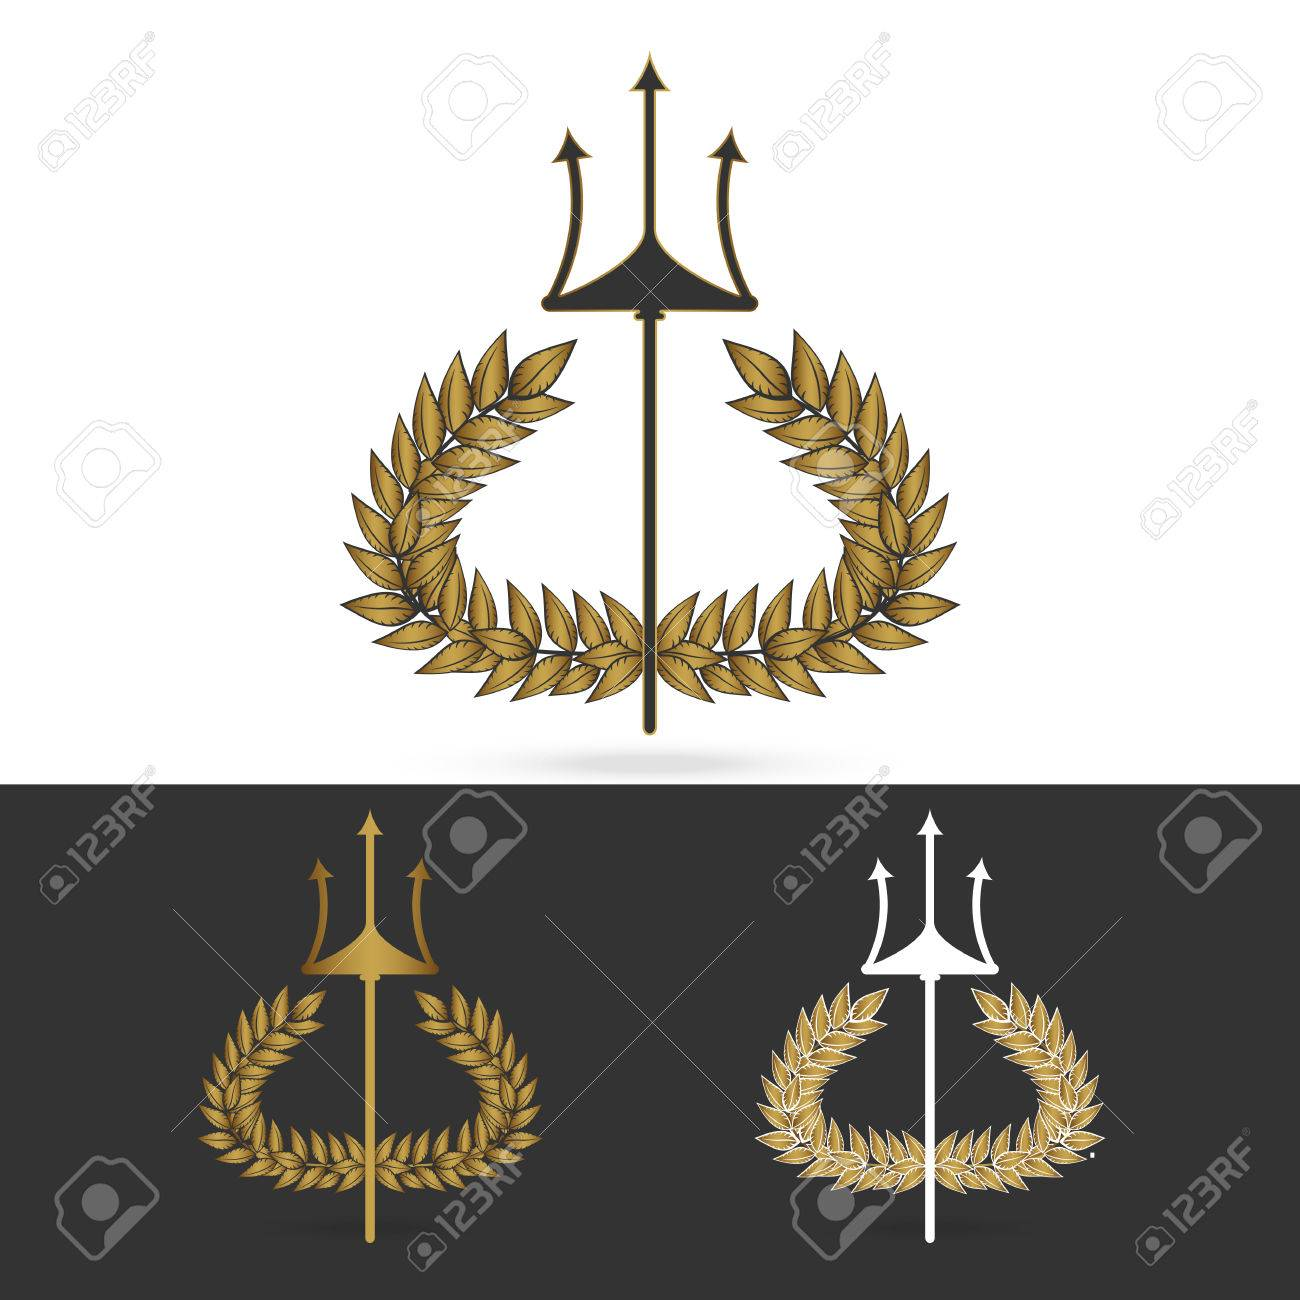 isolate olive branch with trident symbol of greek god poseidon